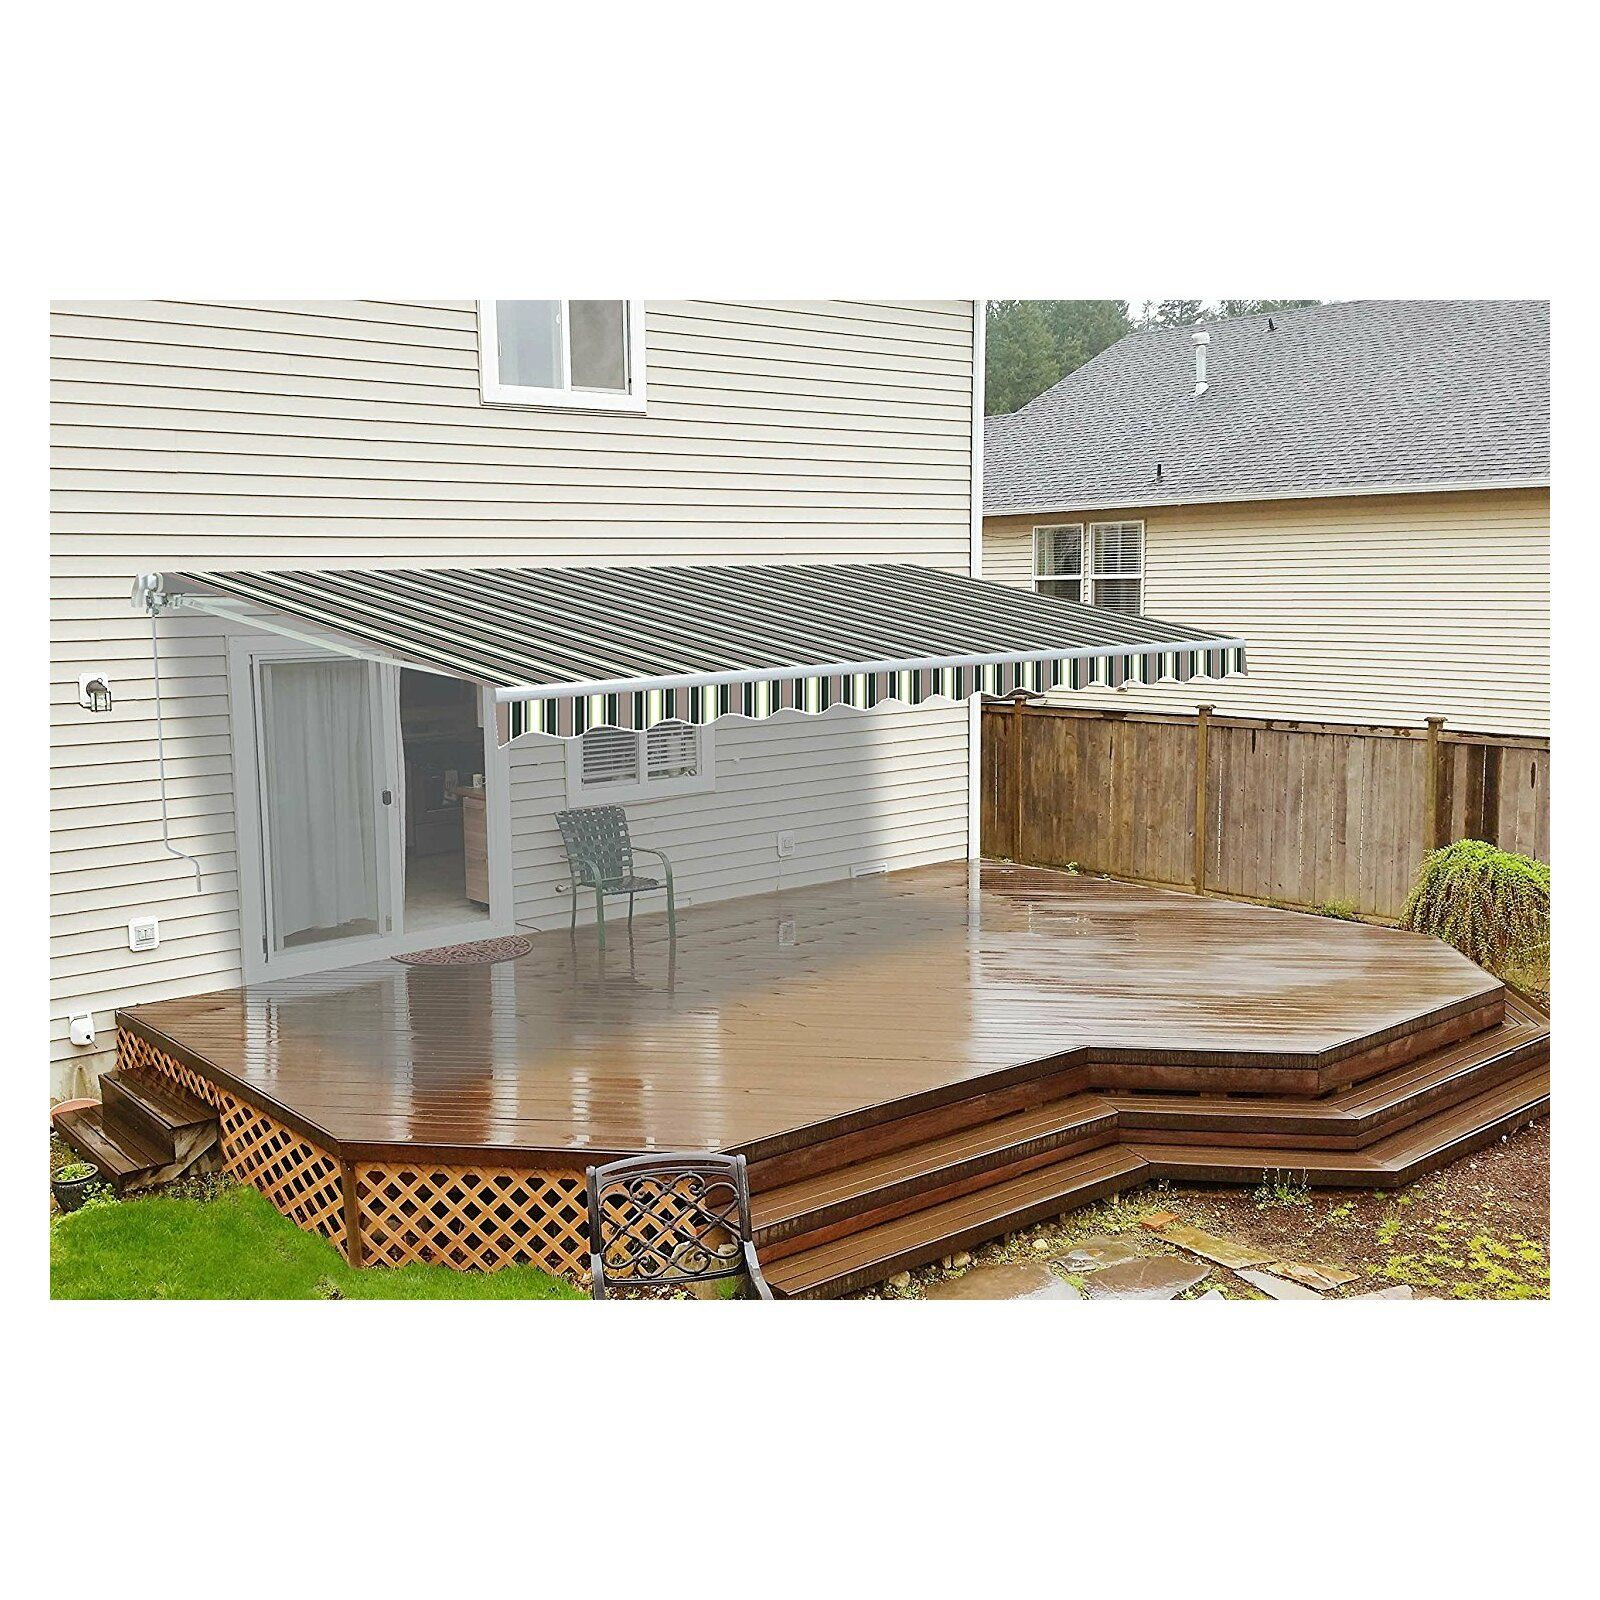 16 Ft W X 10 Ft D Motorized Retraction Slope Patio Awning Patio Awning Patio Canopy Pergola